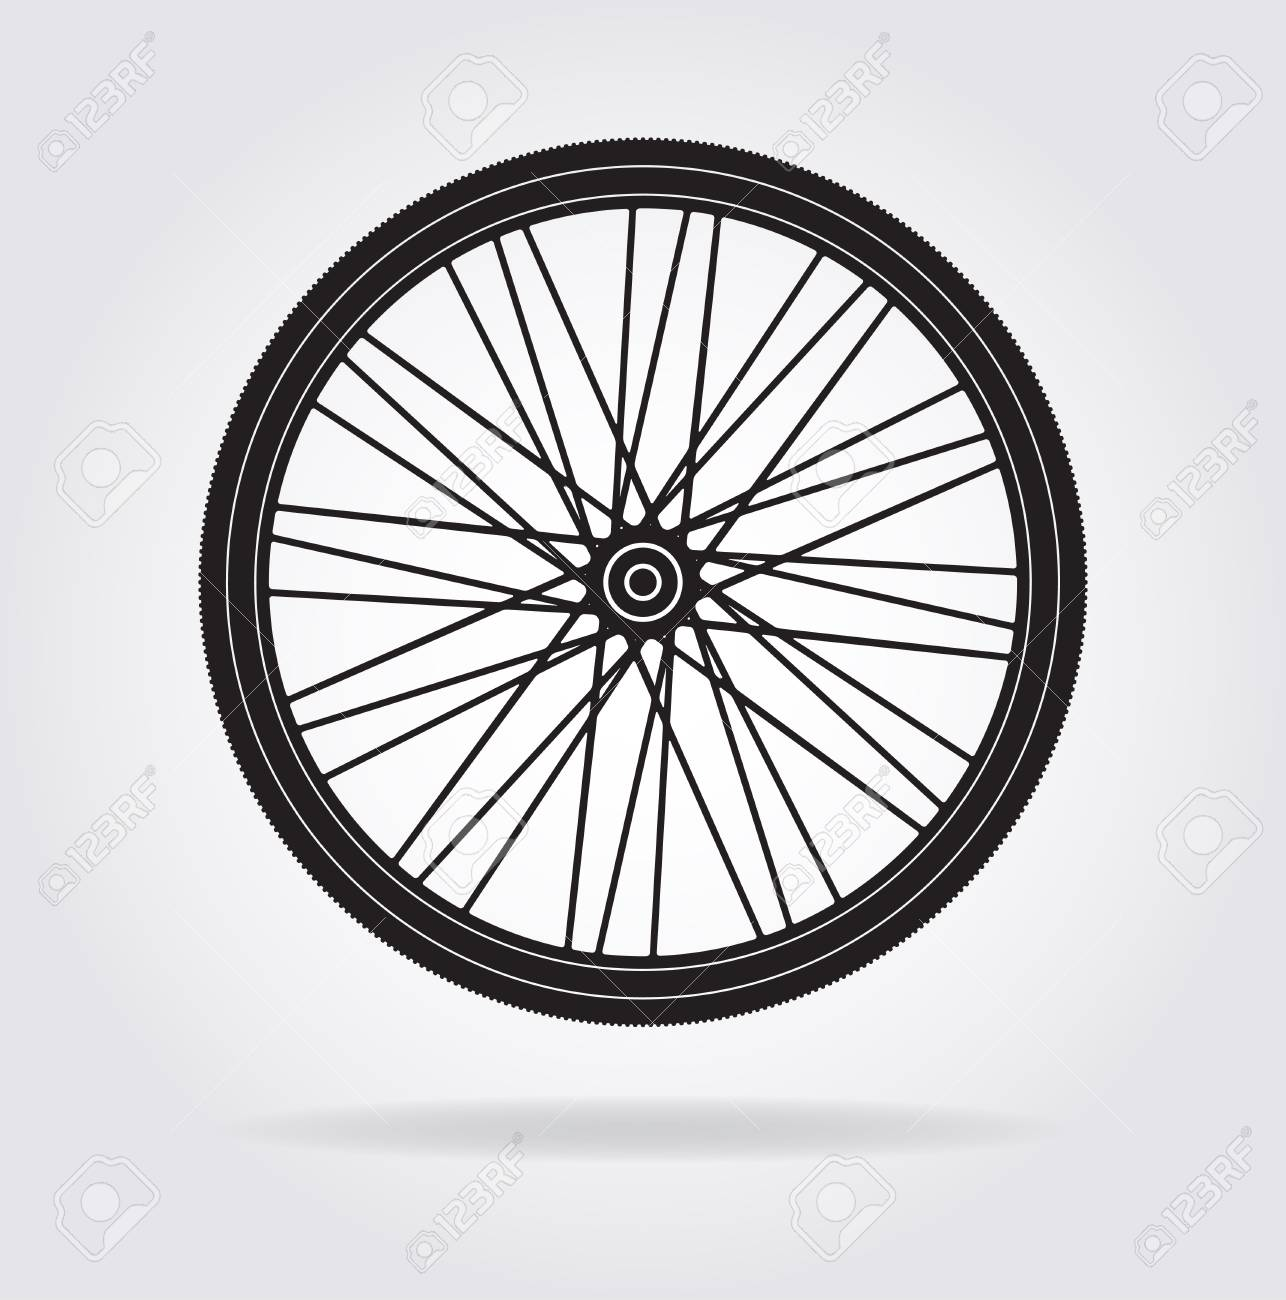 Flat Icon Of A Bike Bicycle Wheel Vector Silhouette For Your Royalty Free Cliparts Vectors And Stock Illustration Image 93144742